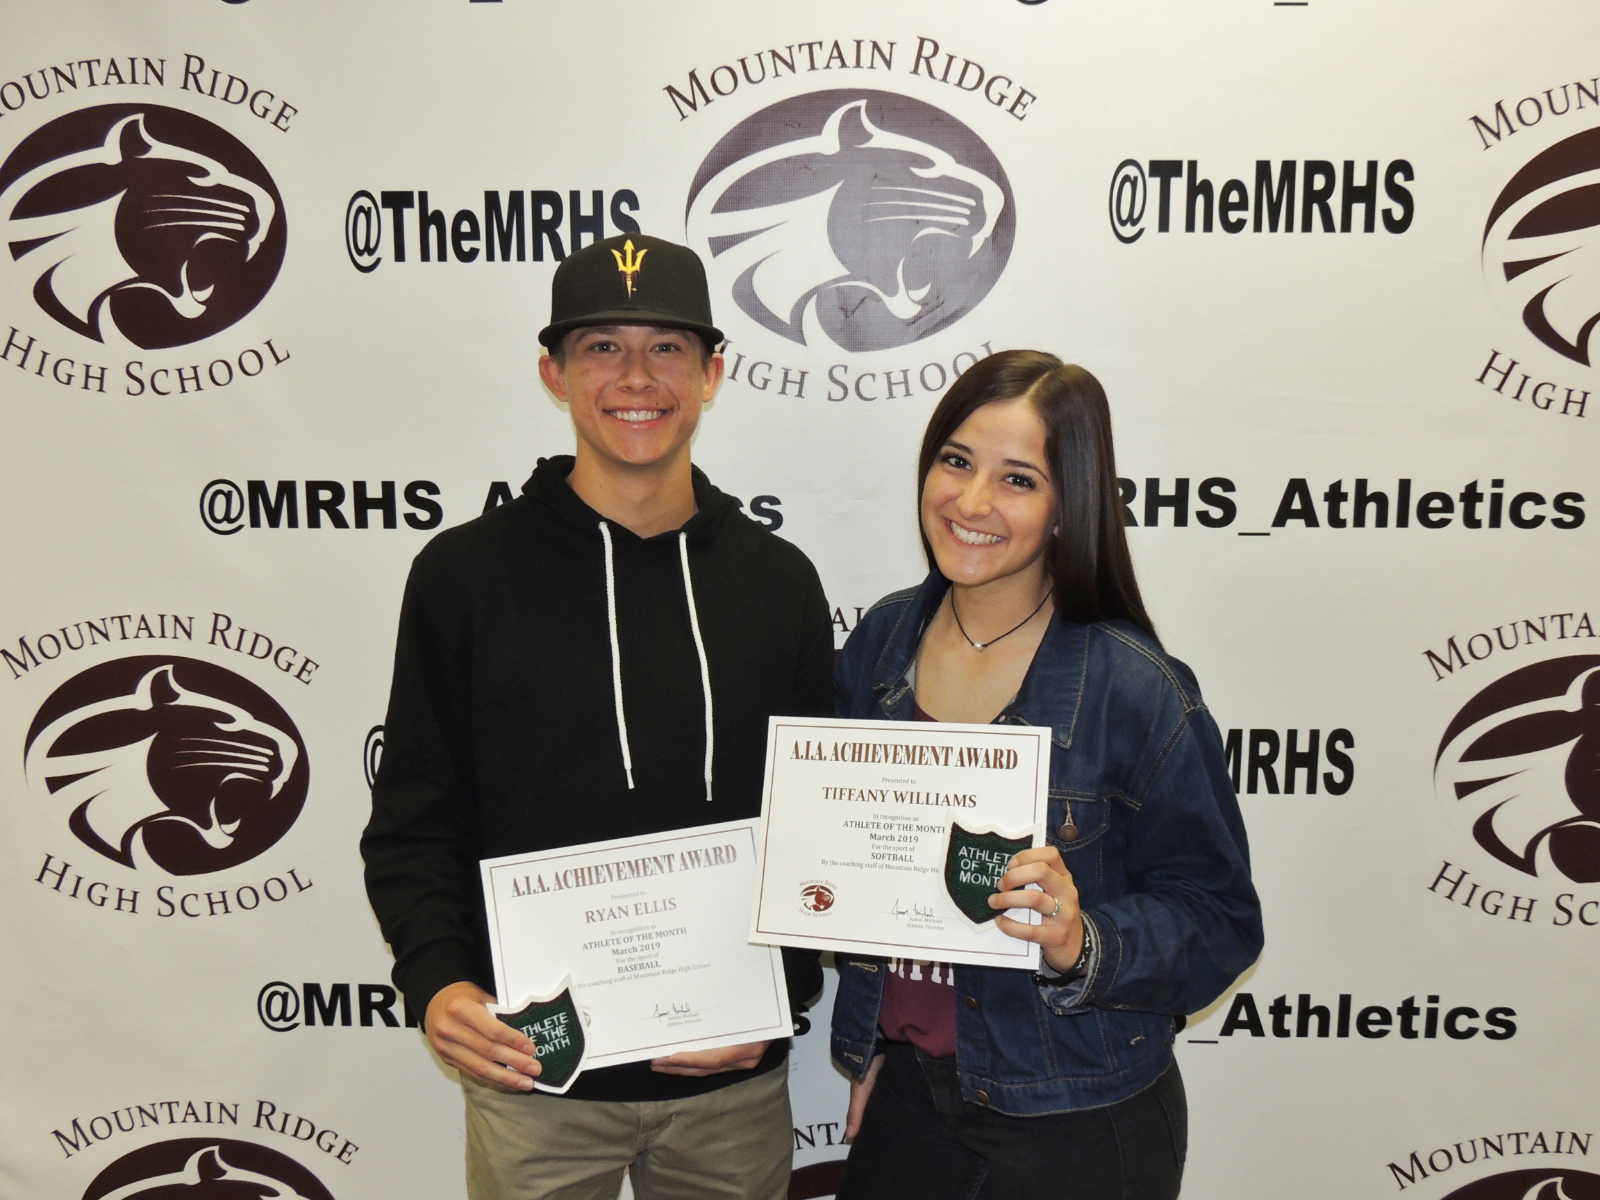 CONGRATULATIONS TO OUR MARCH ATHLETES OF THE MONTH!